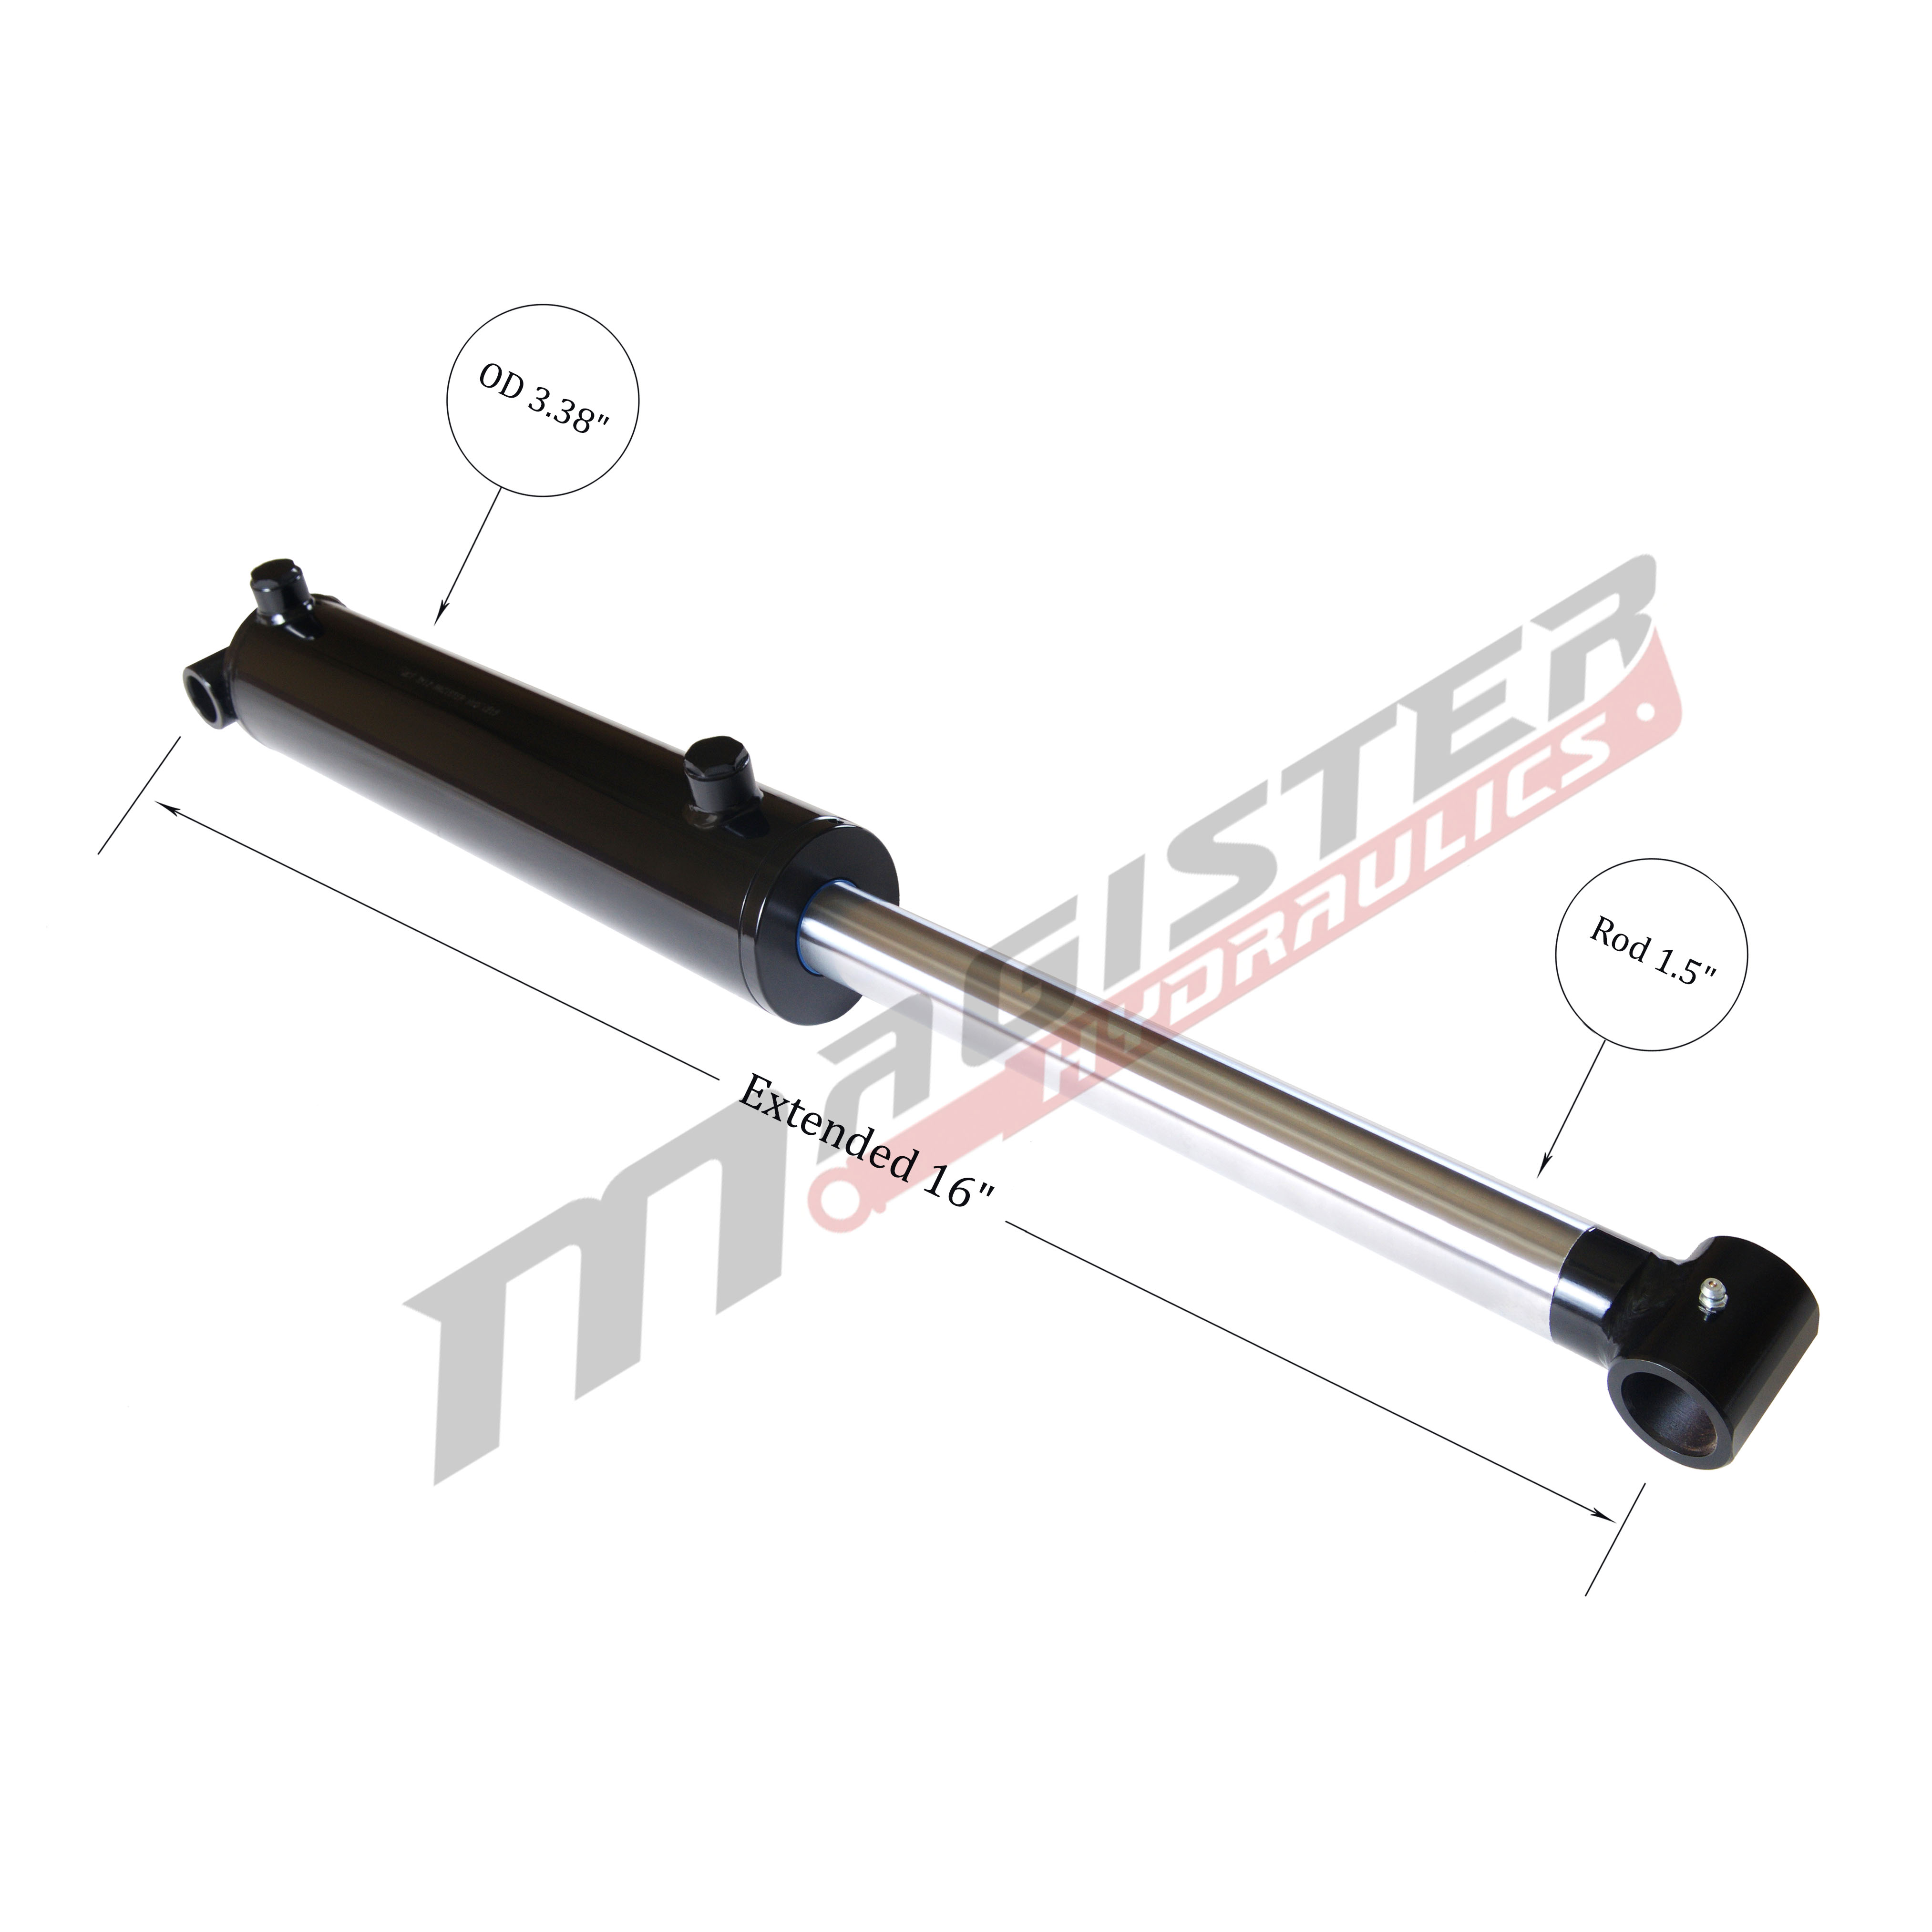 3 bore x 4 stroke hydraulic cylinder, welded cross tube double acting cylinder | Magister Hydraulicsxtended